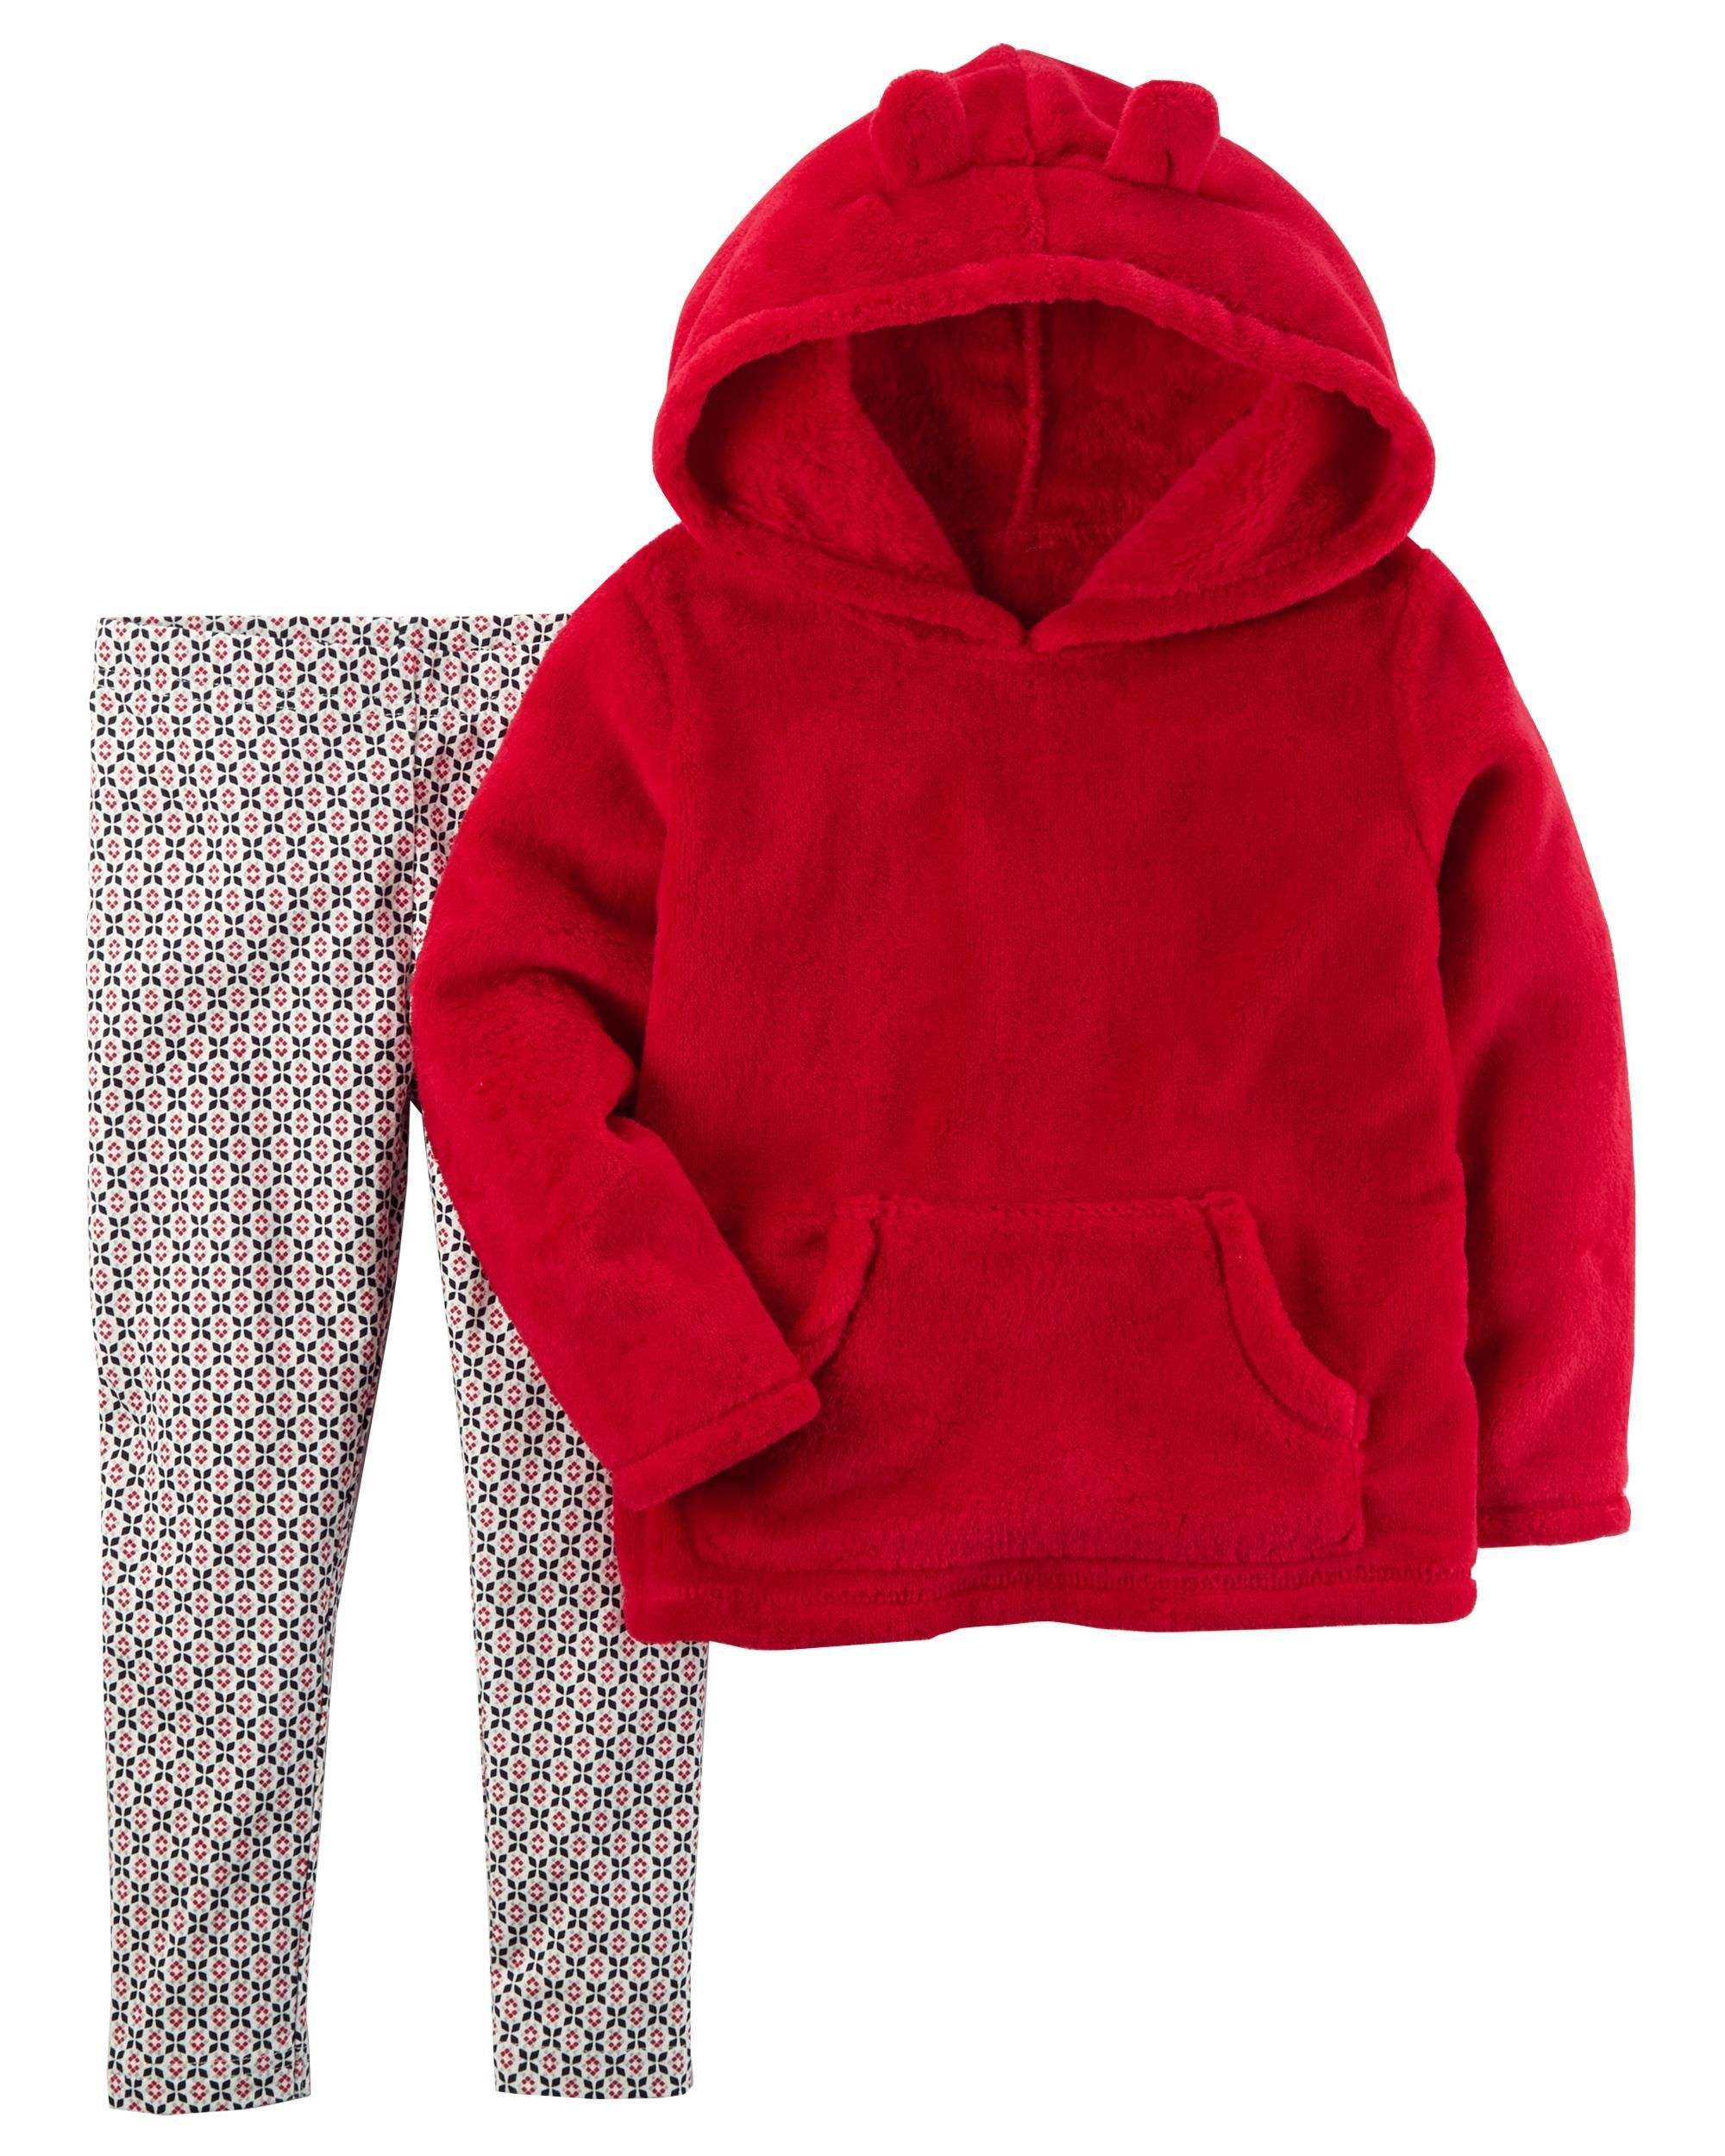 Piece pullover u legging set matching outfits toddler girls and